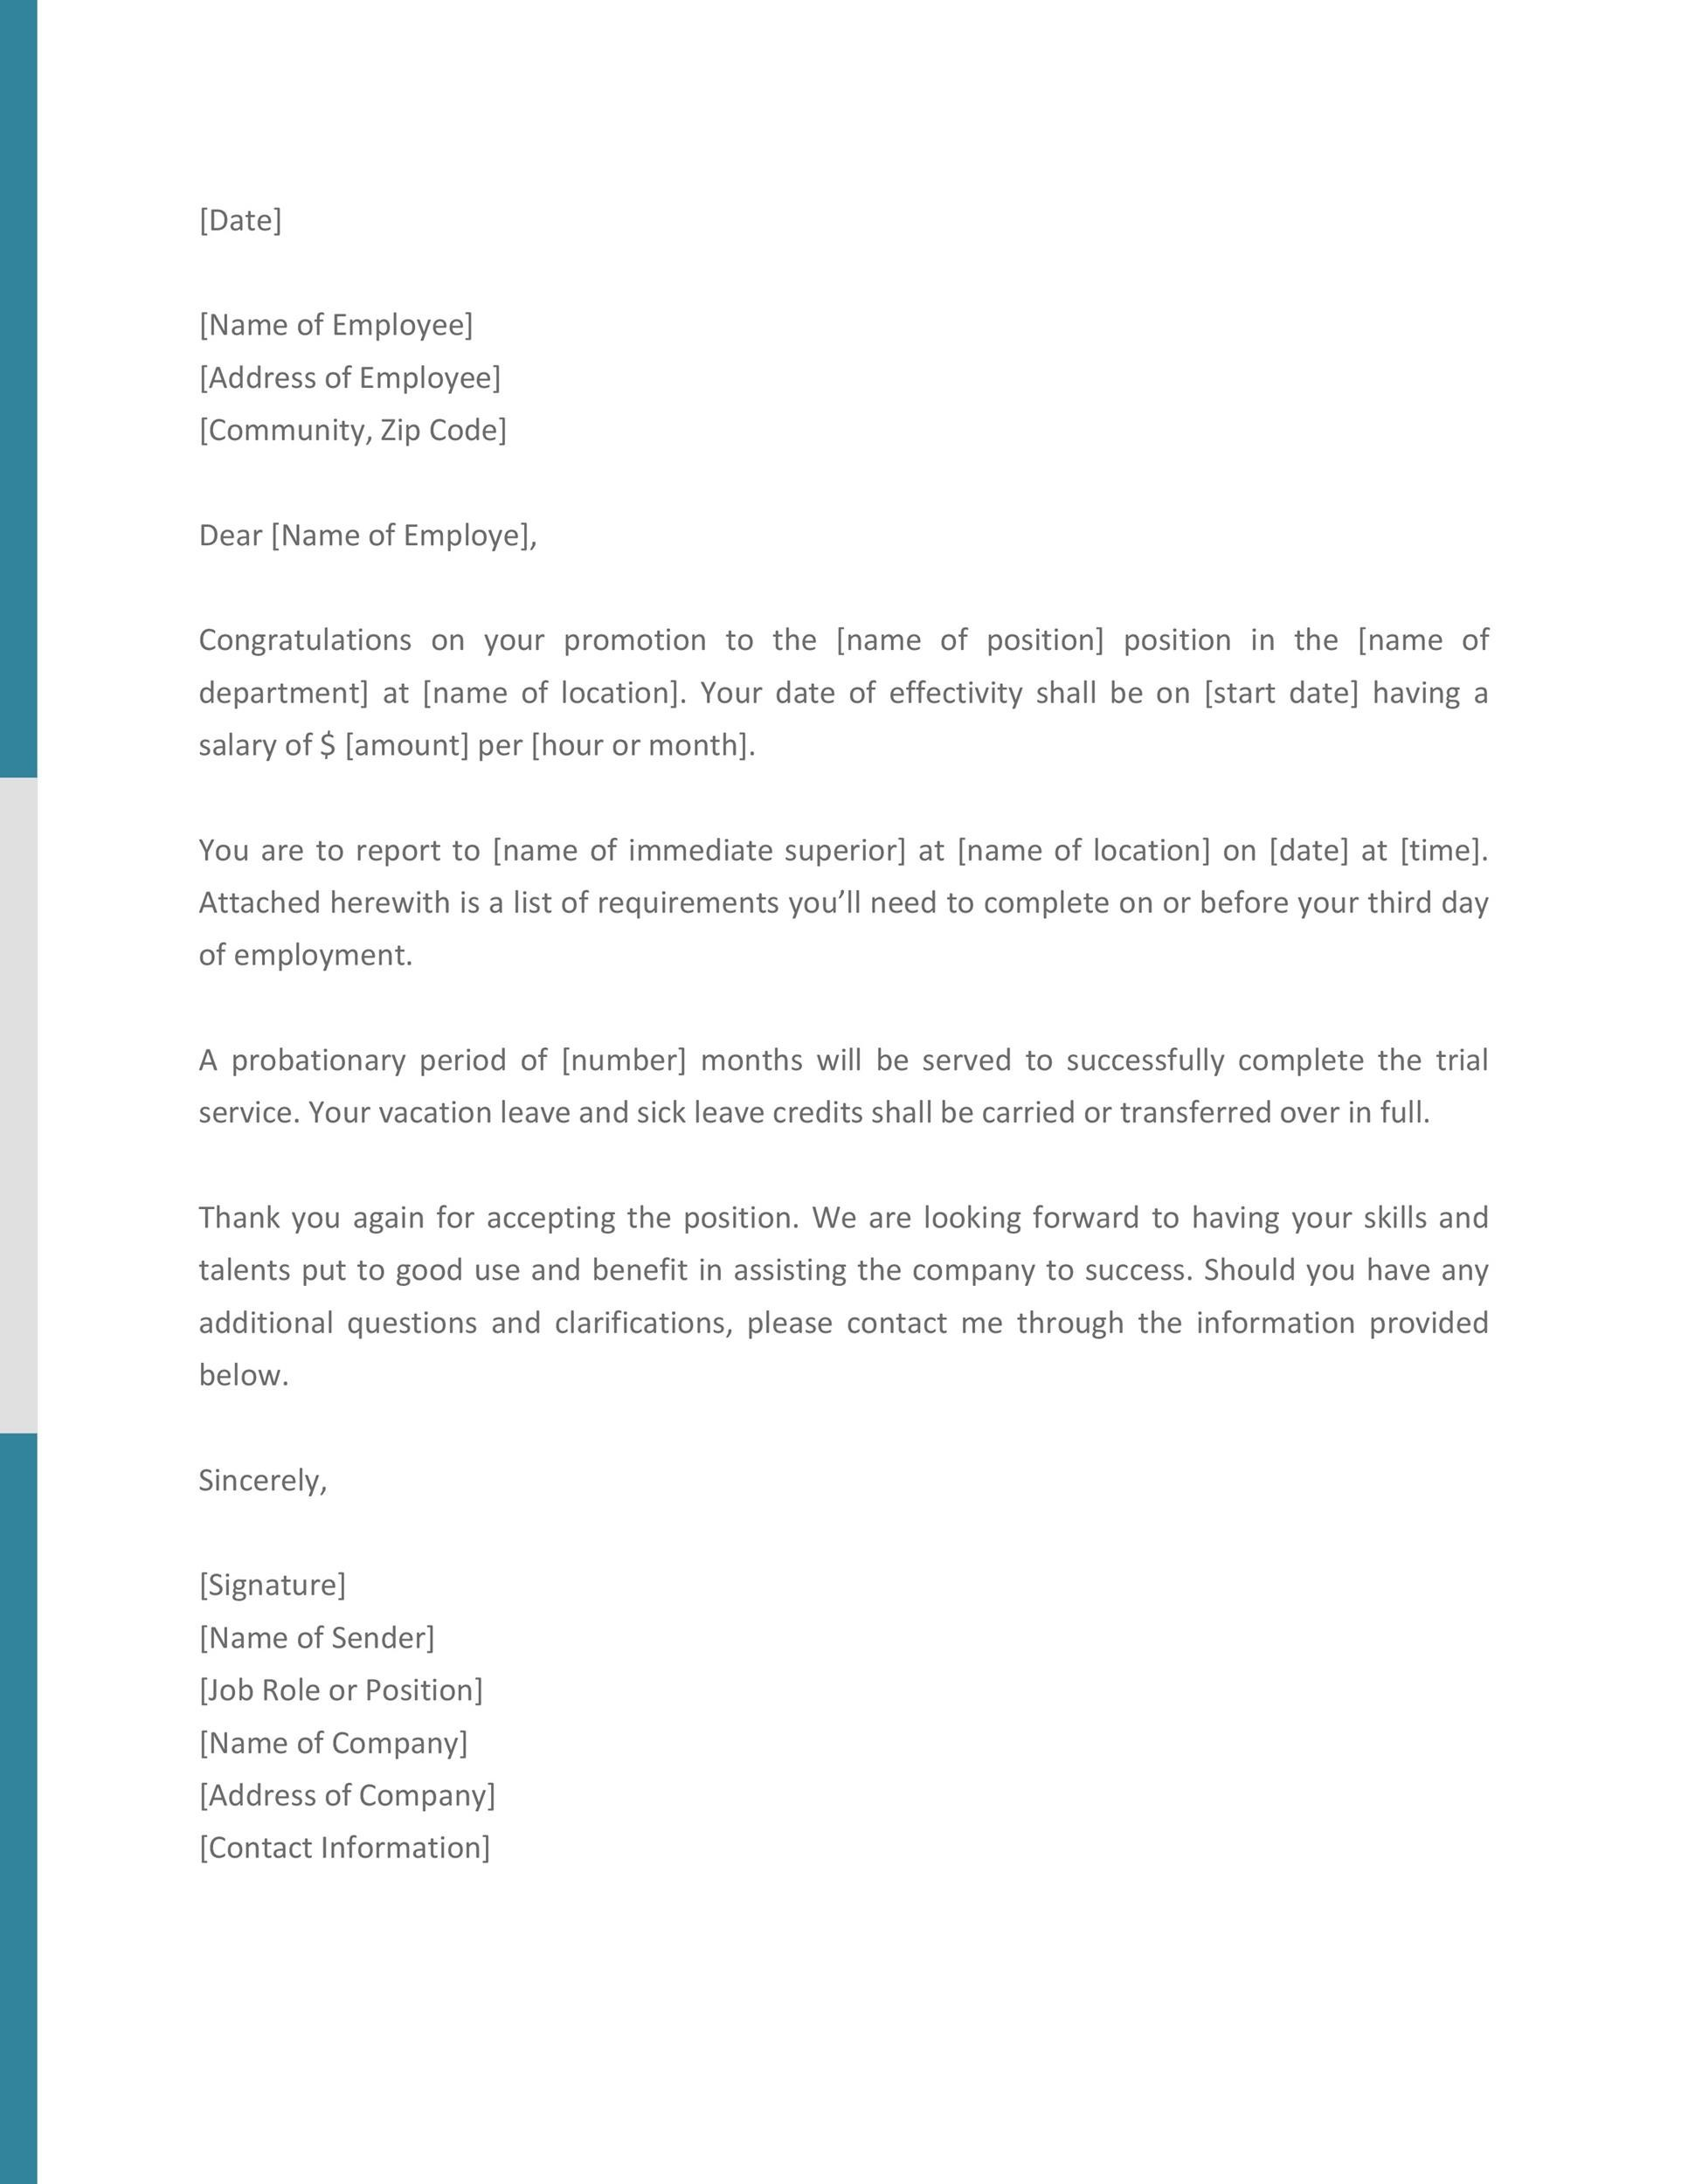 Free promotion letter 22